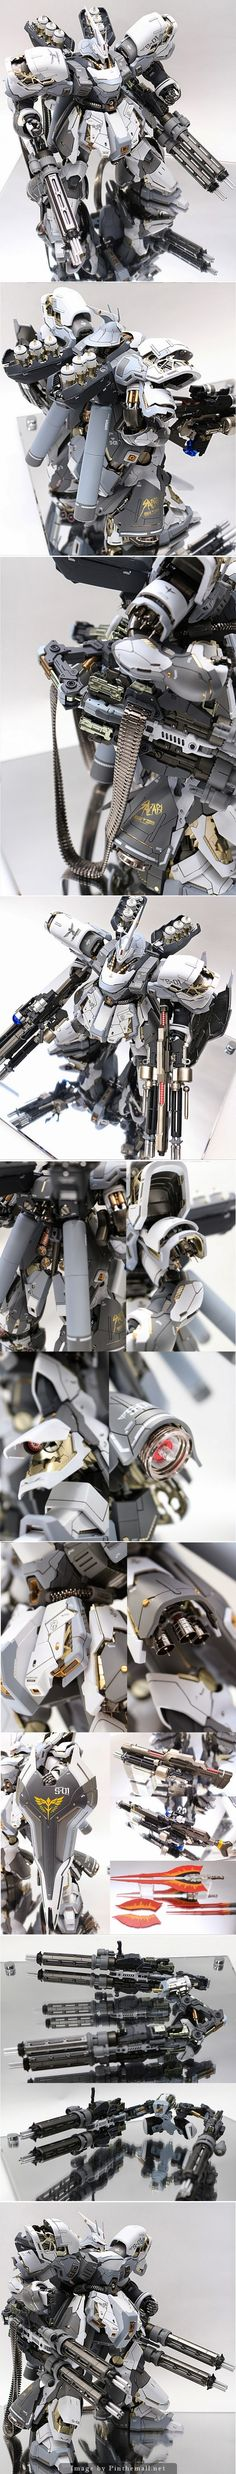 http://gundamguy.blogspot.tw/2014/05/mg-1100-msn-04-snow-sazabi-custom-build.html?m=1